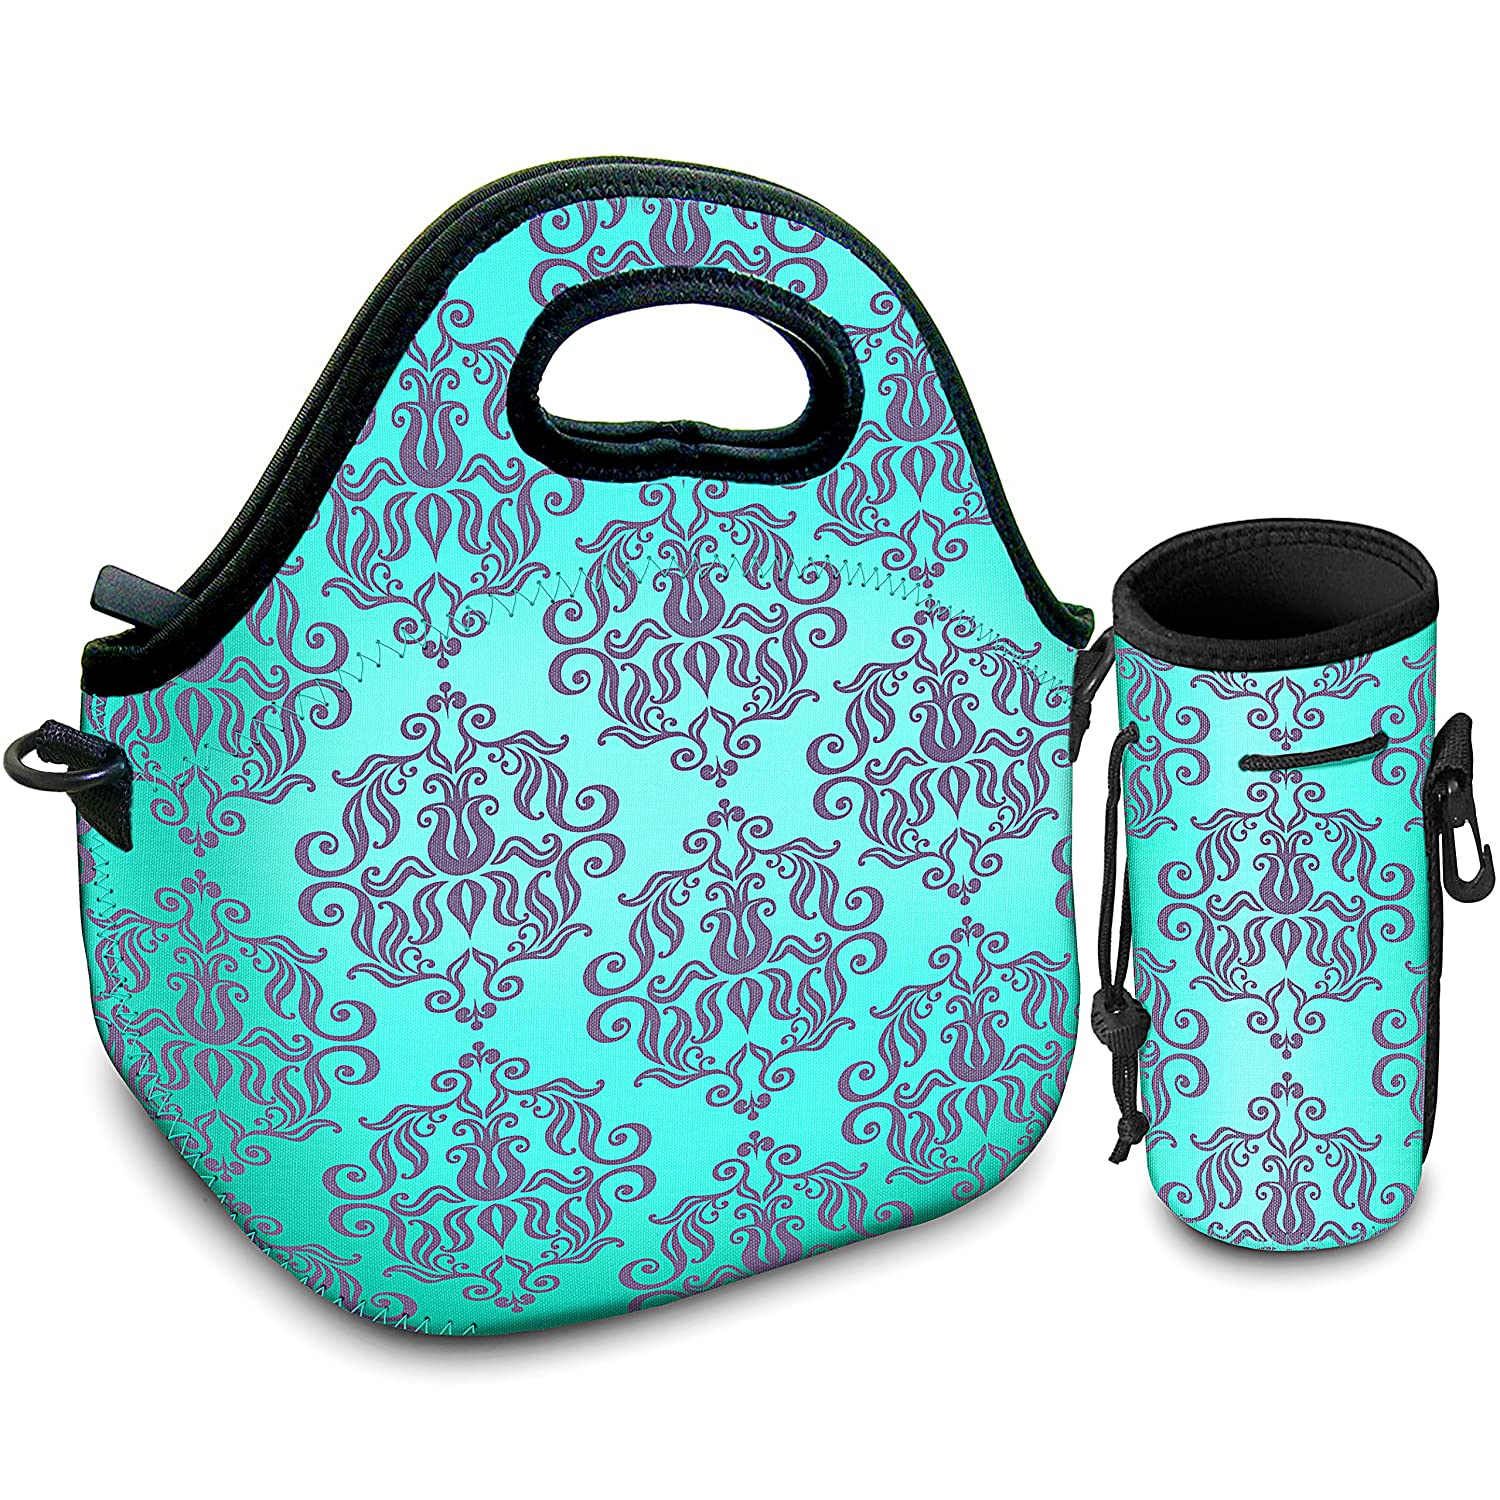 Neoprene Reuable Lunchbox Tote Lunch Bag For Women, Adults, Kids, Girls, and Teen Girls With Bottle Cooler | Rugged Zipper | With Adjustable Strap | For Snacks, Lunch, School, Work, Picnic SGM